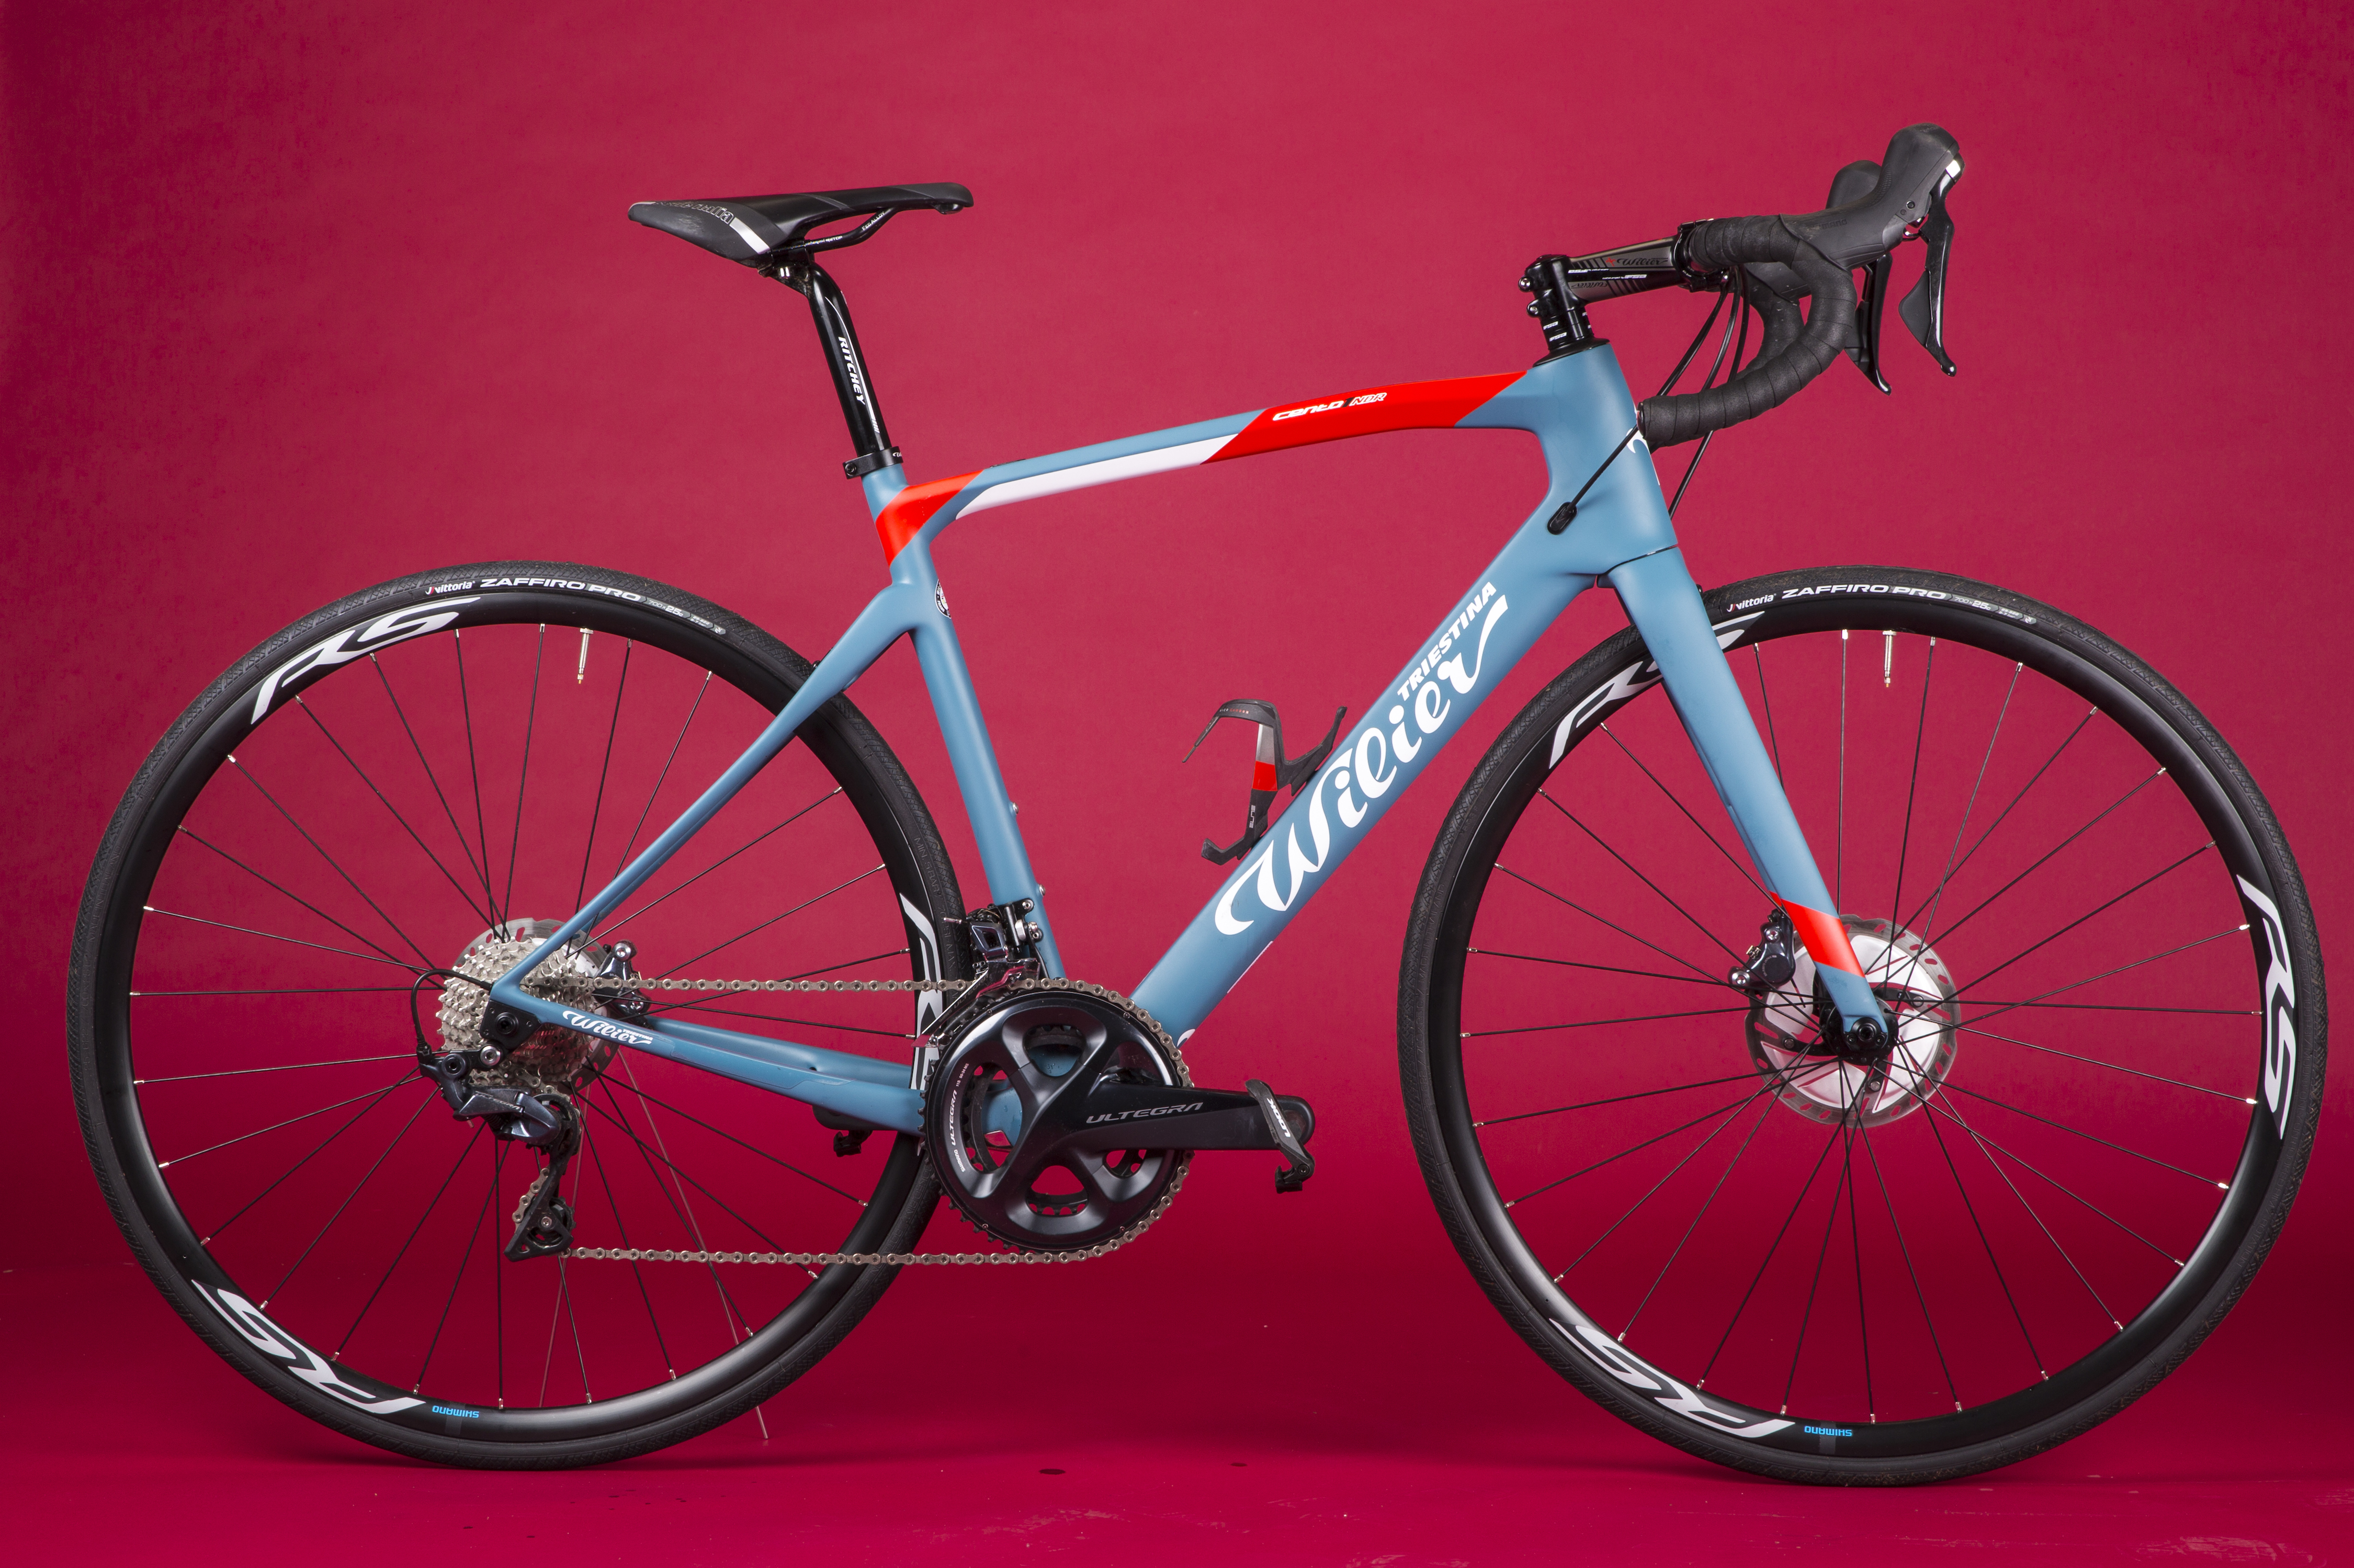 c7724841333 Wilier Cento 1 NDR Ultegra review - Cycling Weekly